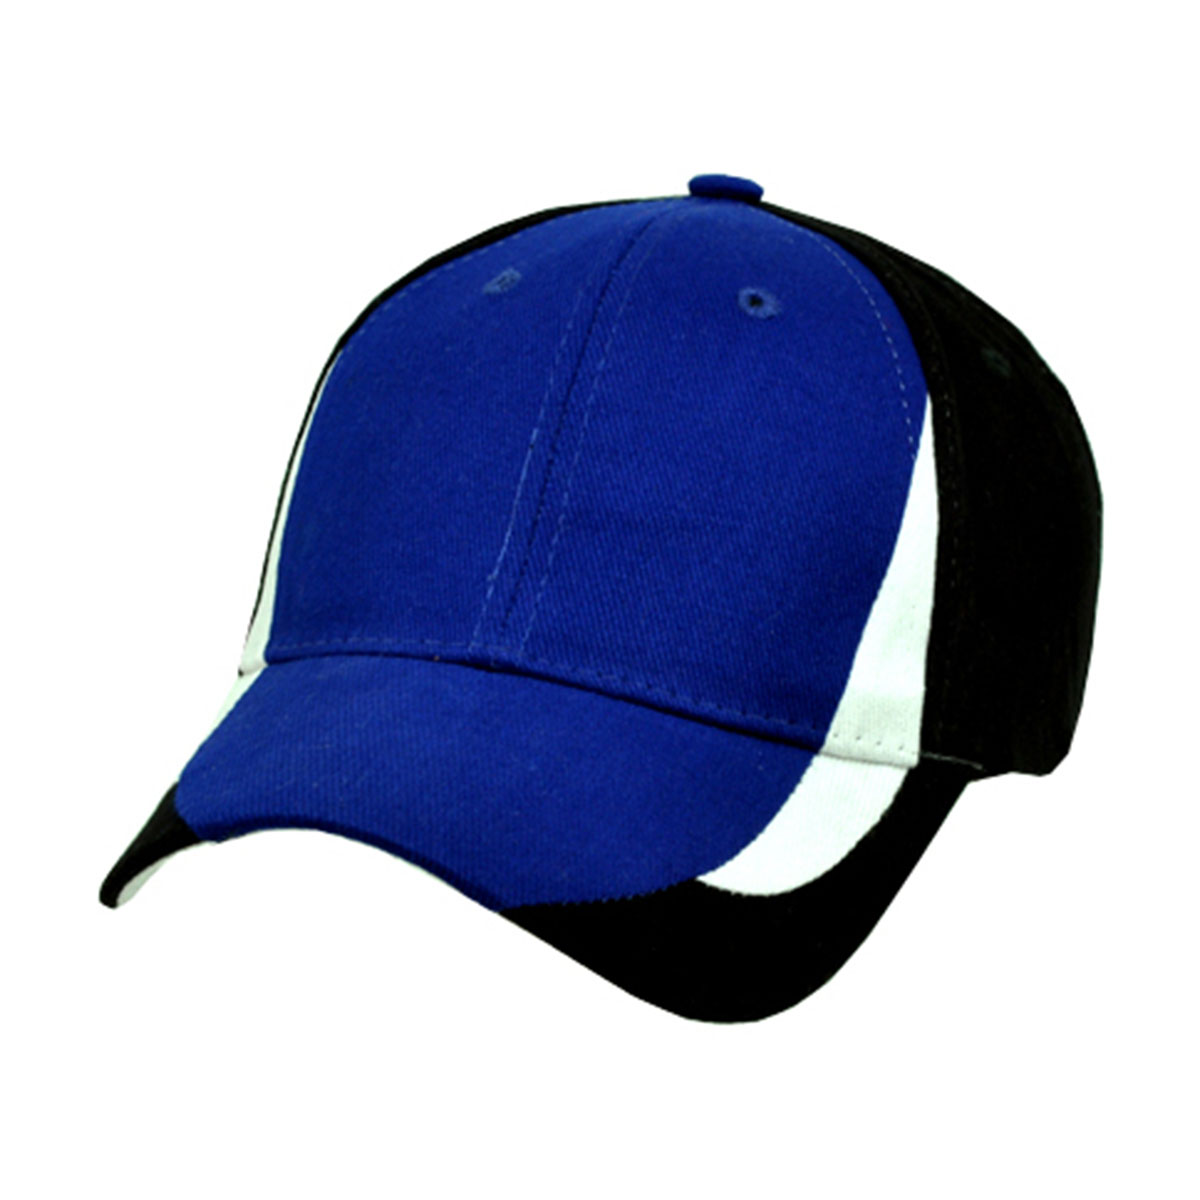 Tribeca Cap-Royal / White / Black